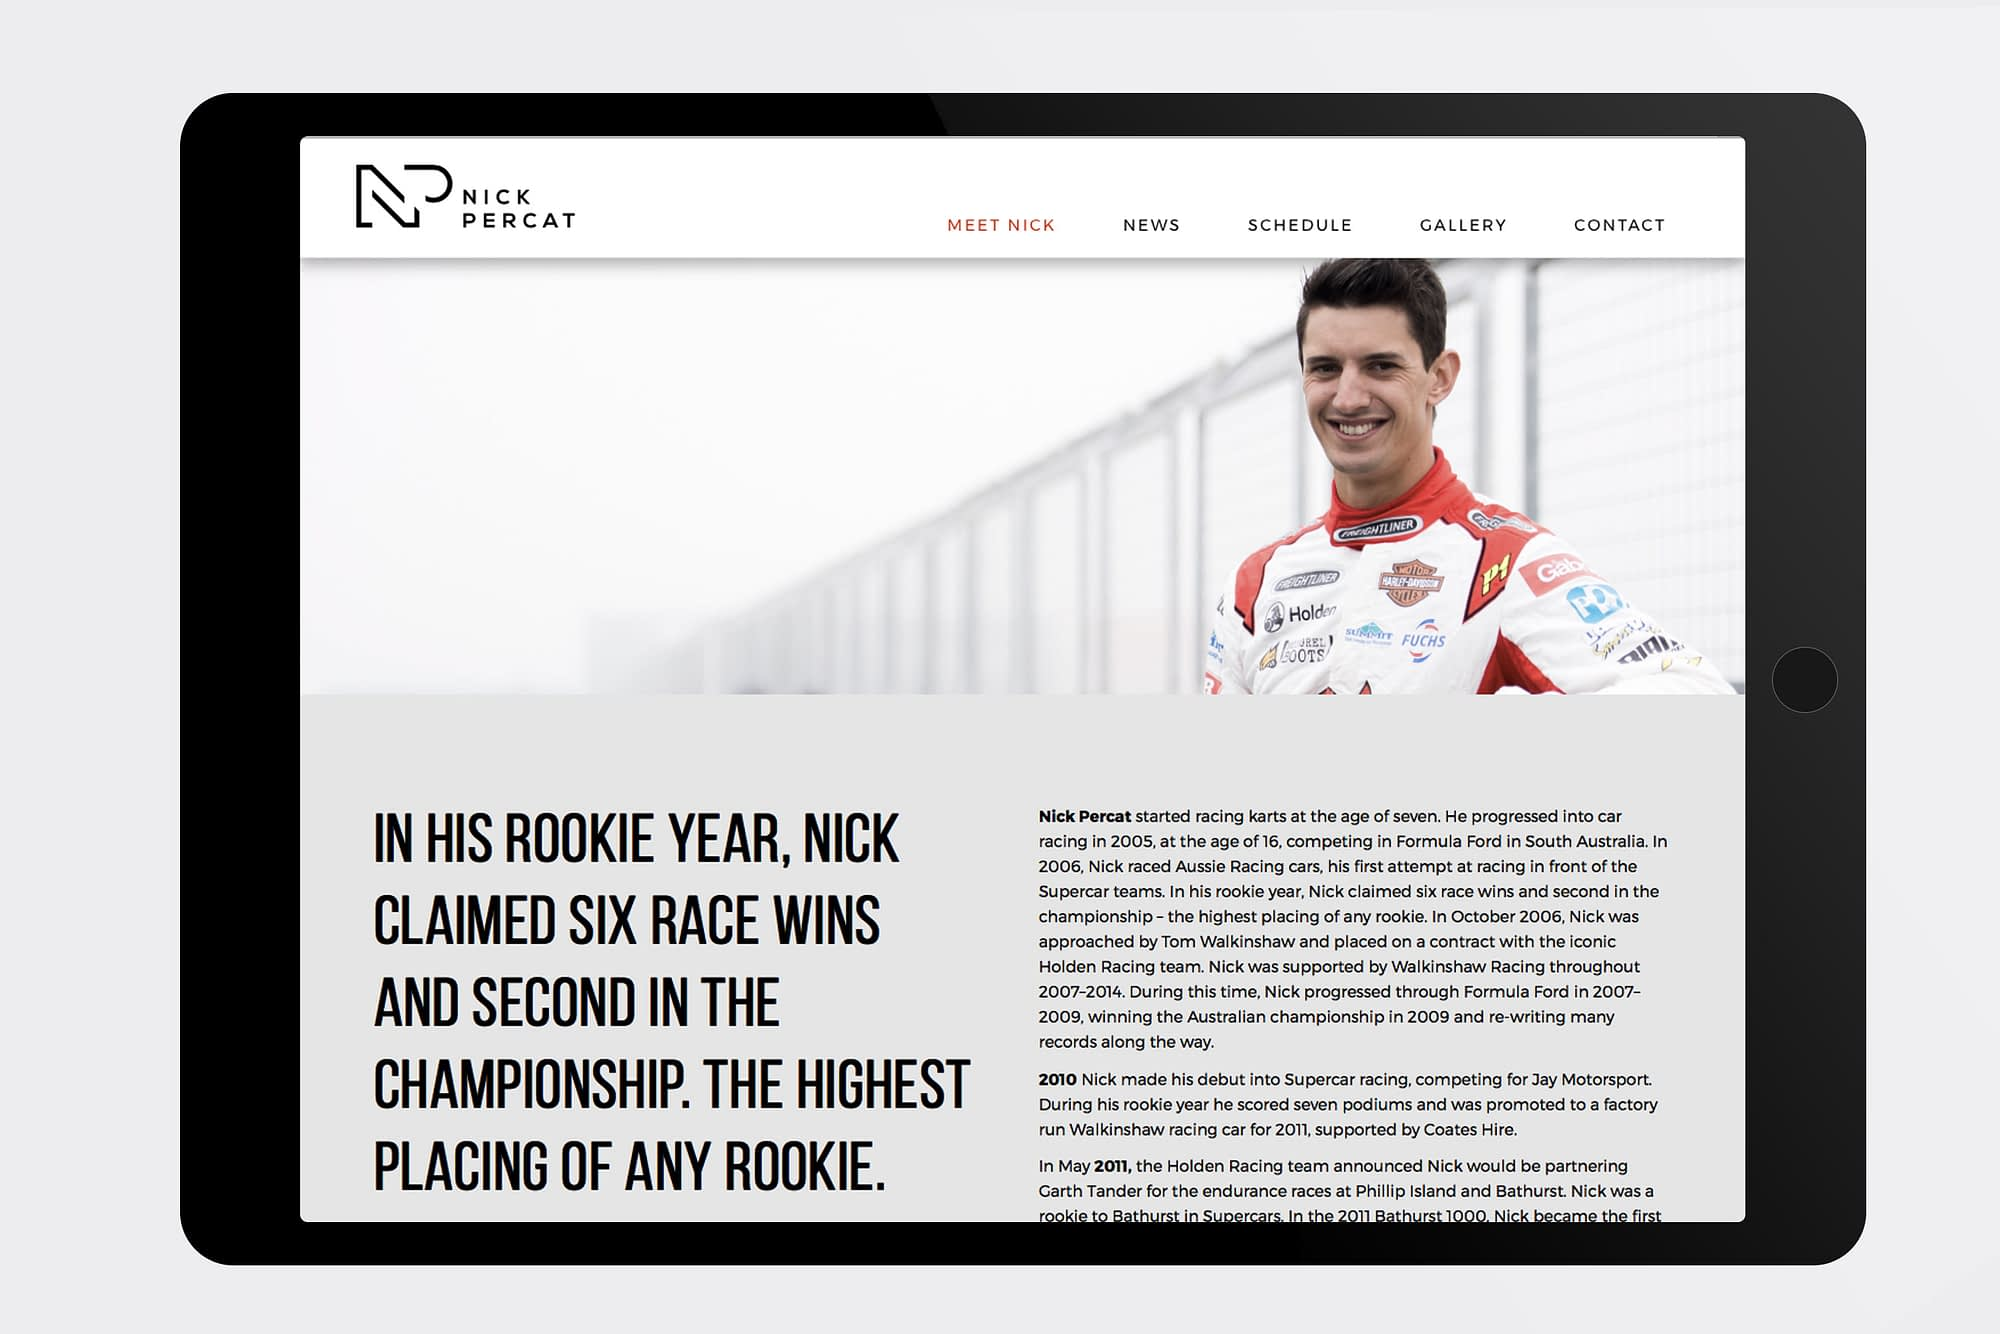 Nick Percat website Meet Nick page